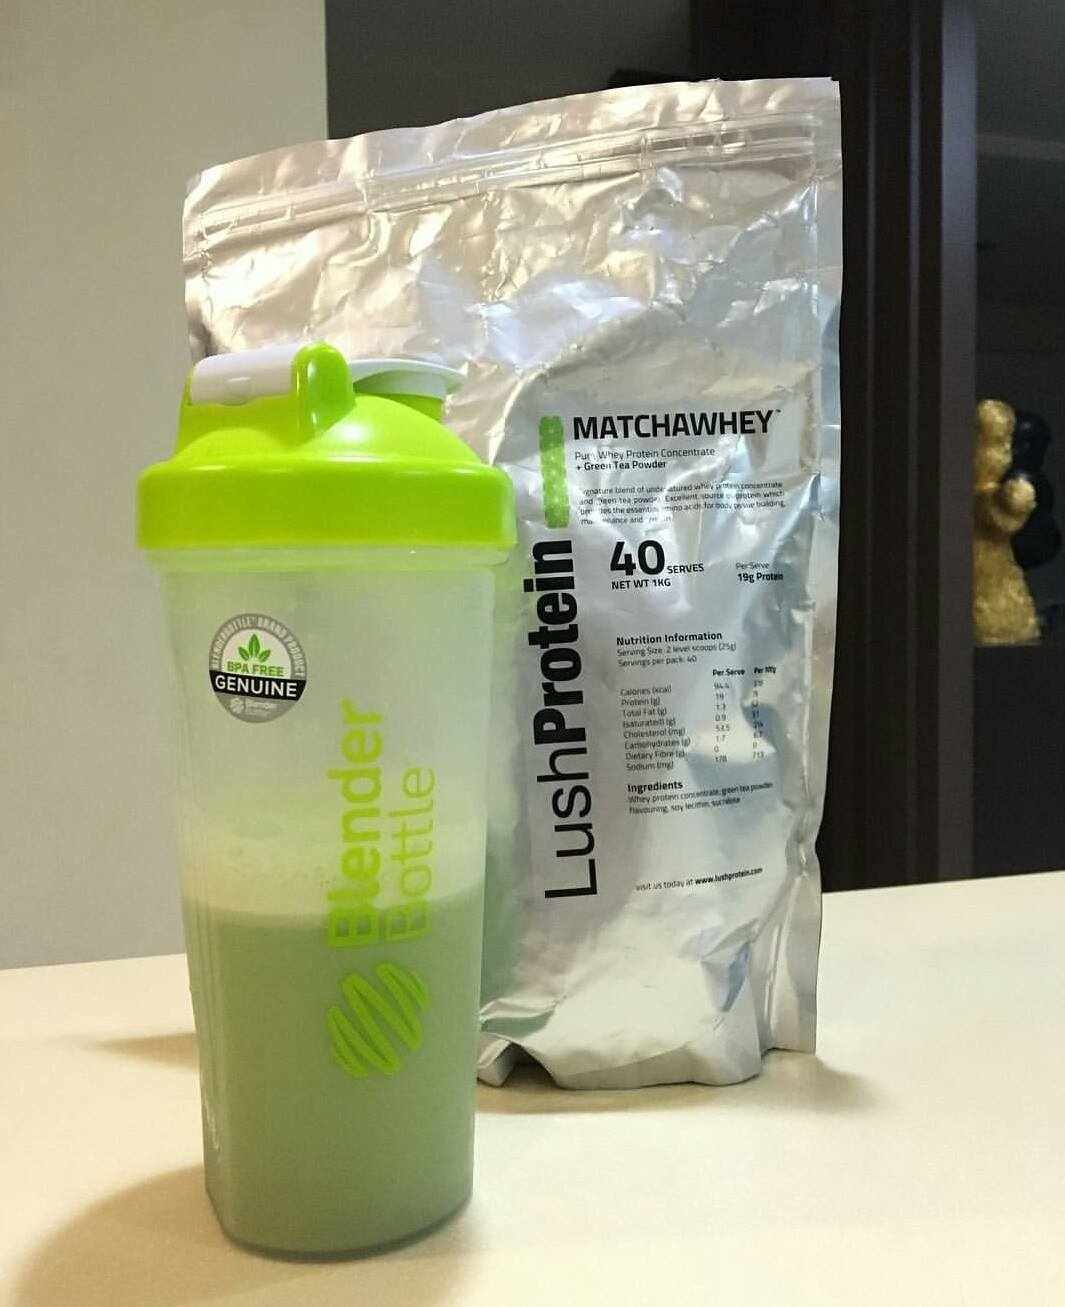 lushprotein matchawhey is a 2-in-1 protein powder with energy boosting properties